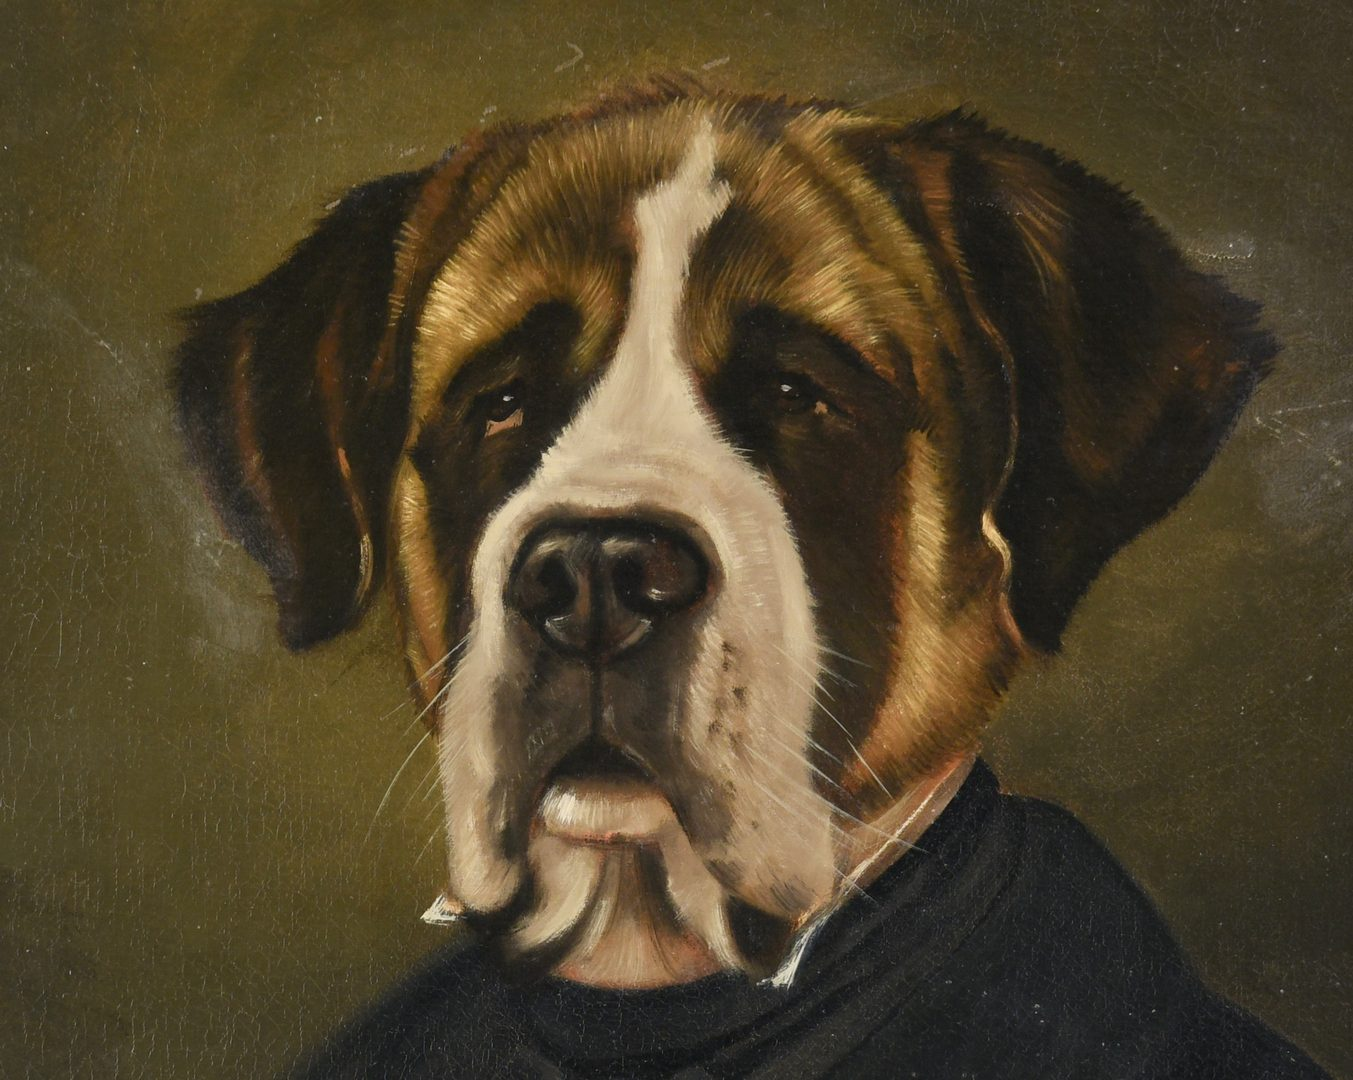 Lot 665: Thierry Poncelet O/C Dog in Suit